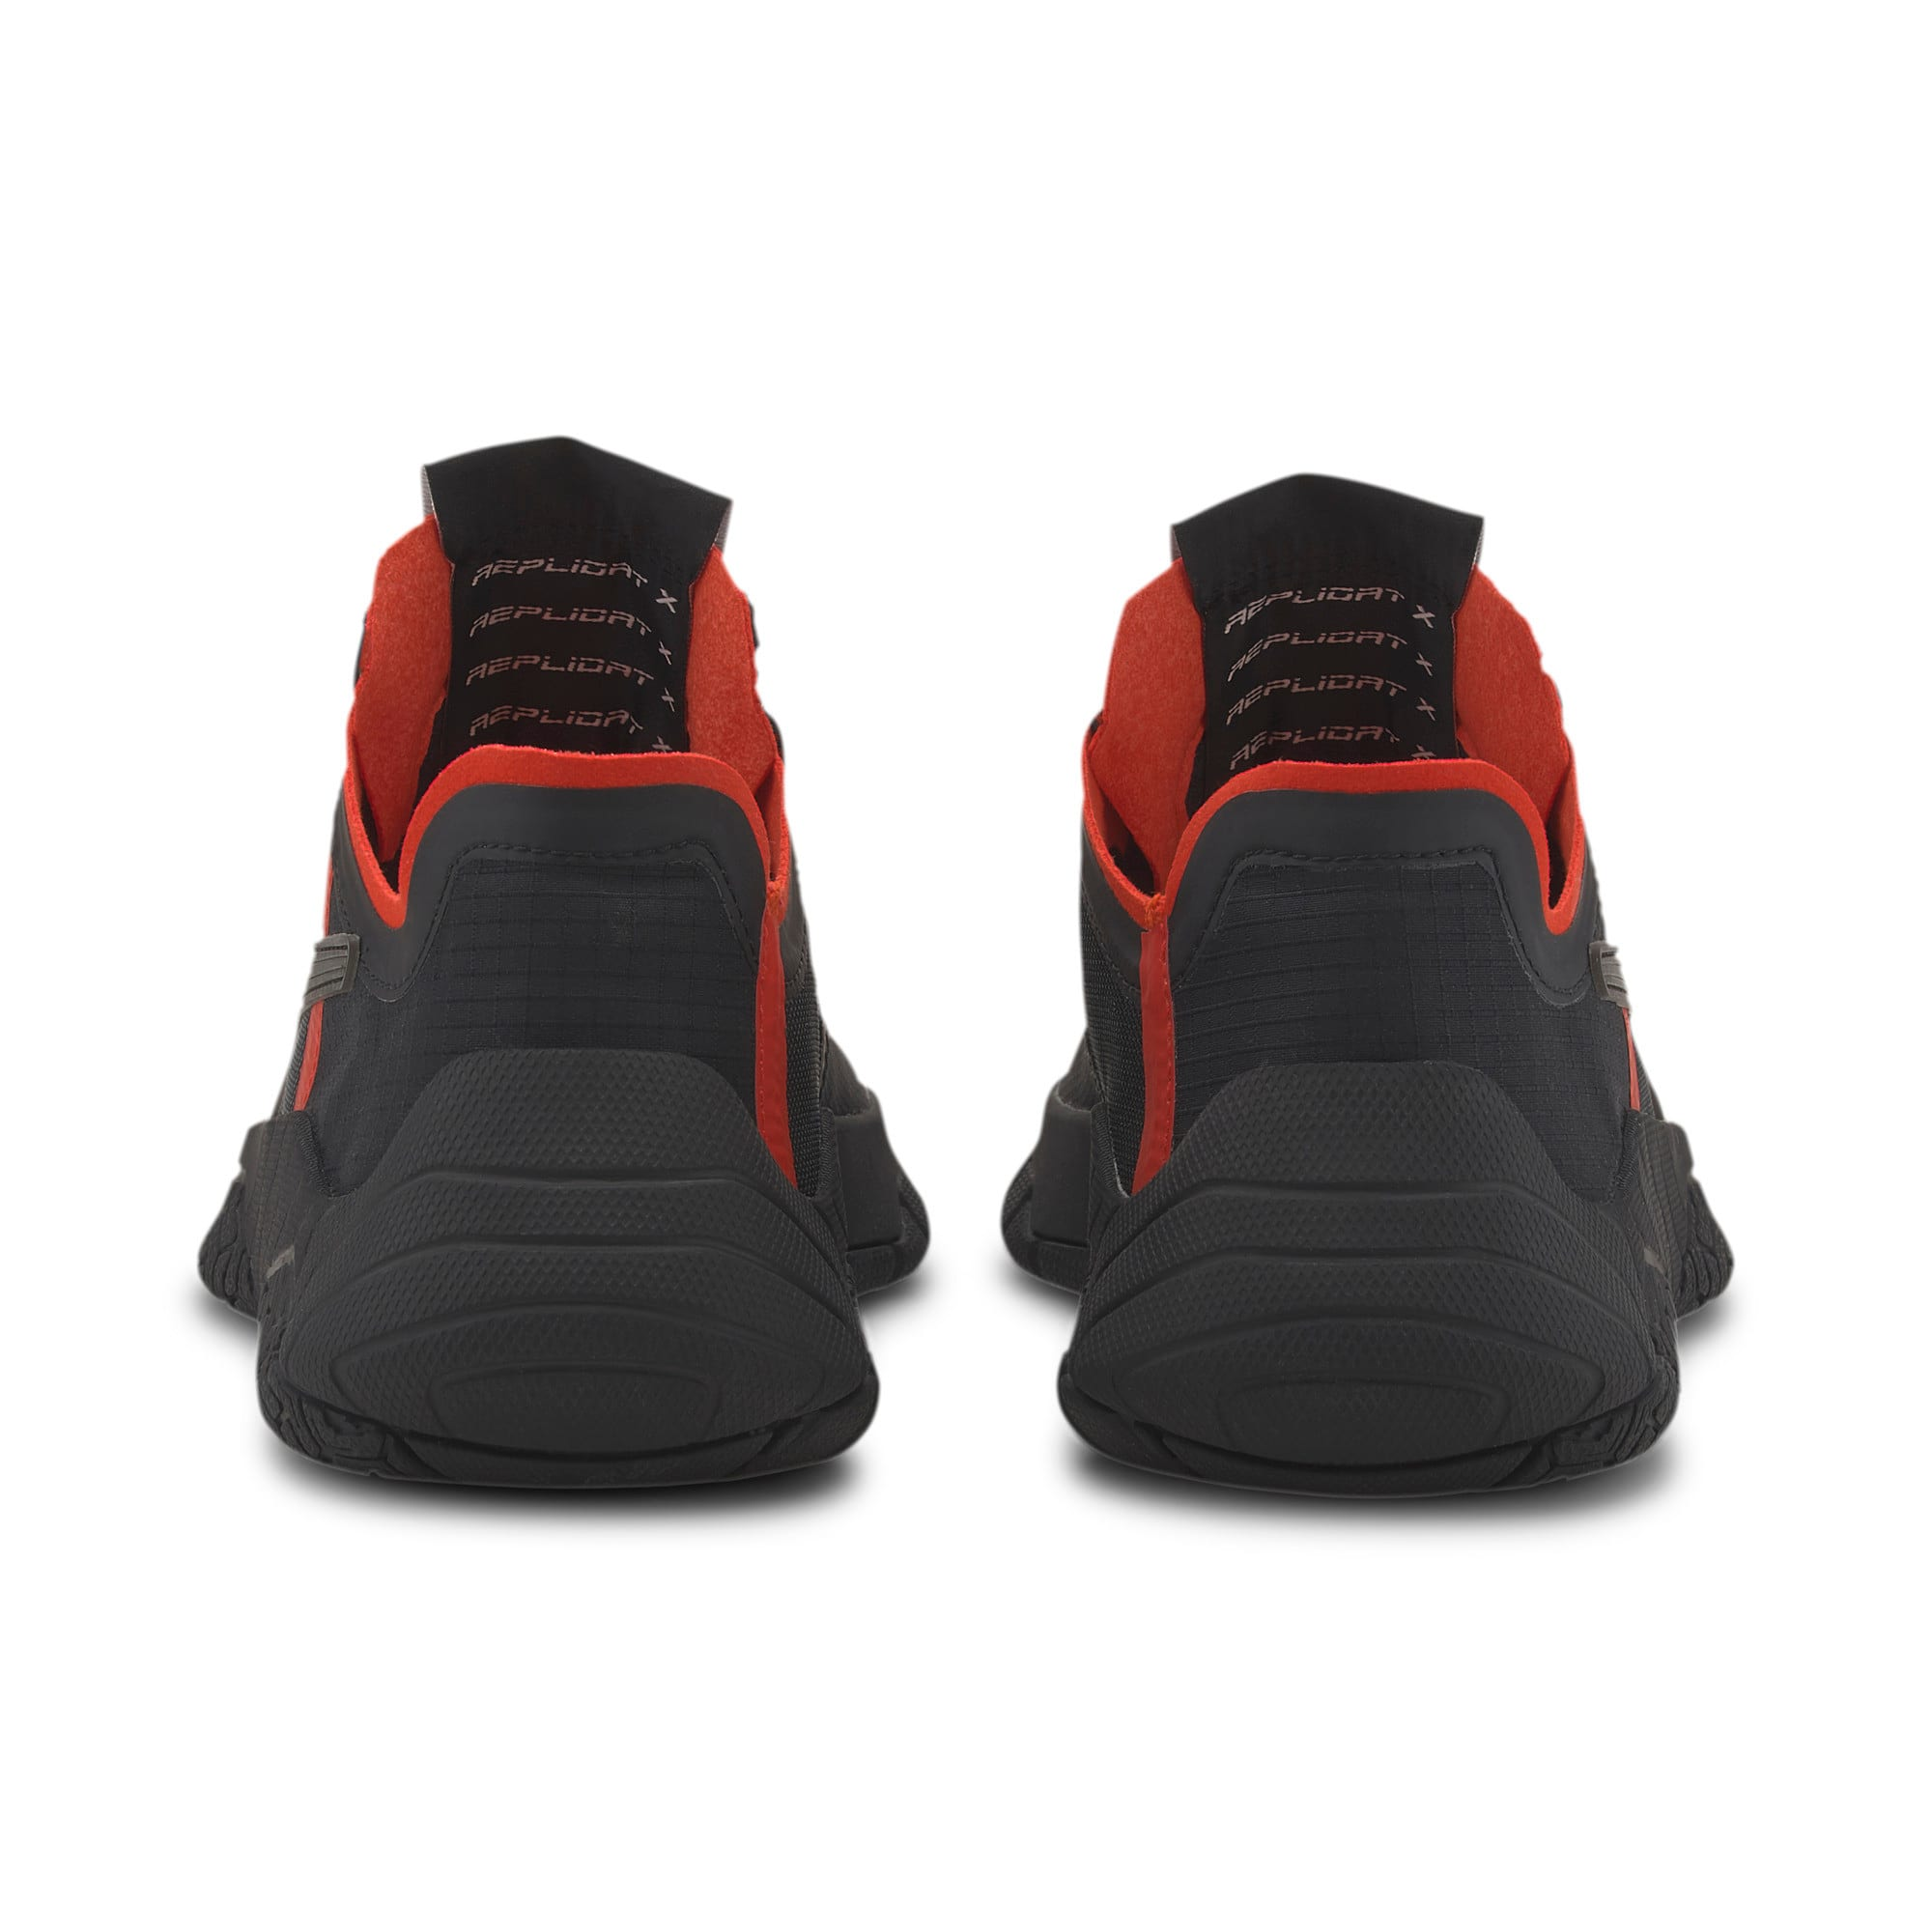 Thumbnail 3 of Replicat-X Circuit Trainers, Puma Black-Puma Red, medium